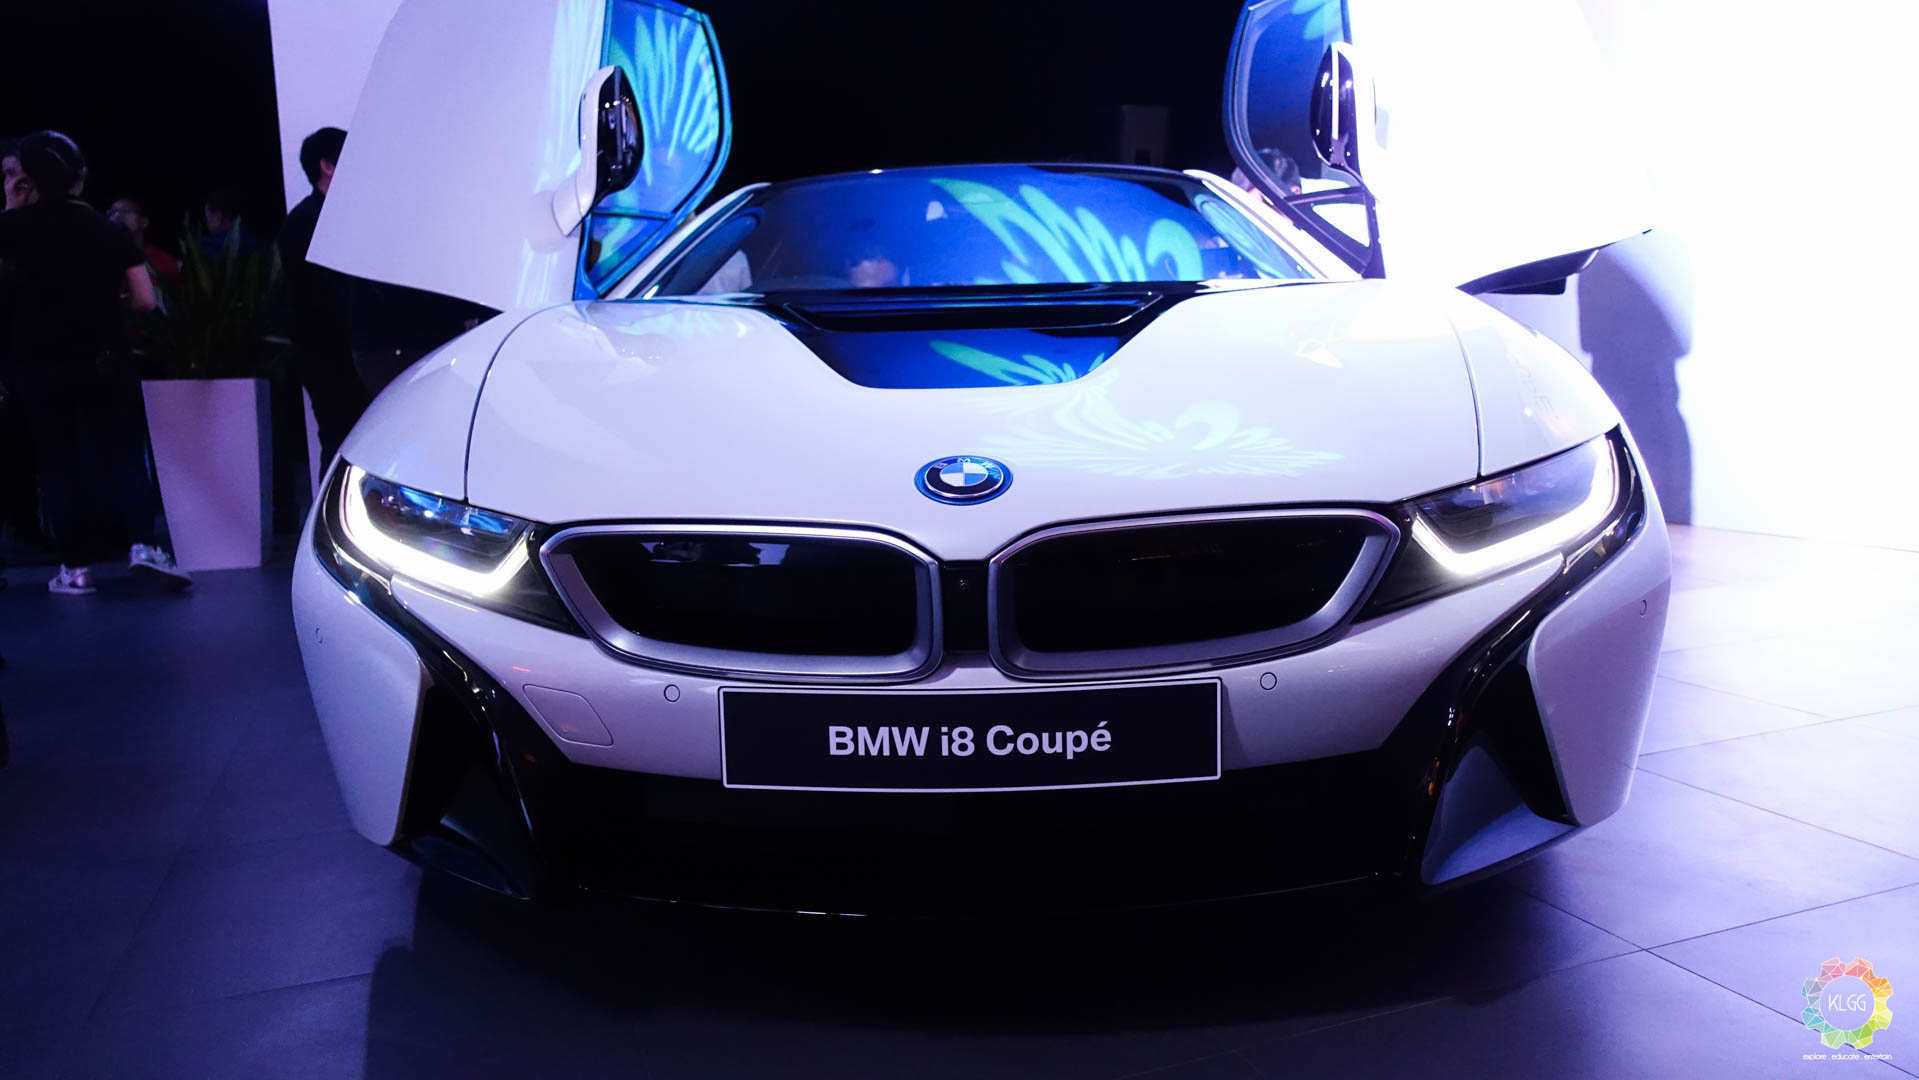 The All New Bmw I8 Coupe Gets More Efficient And A More Polished